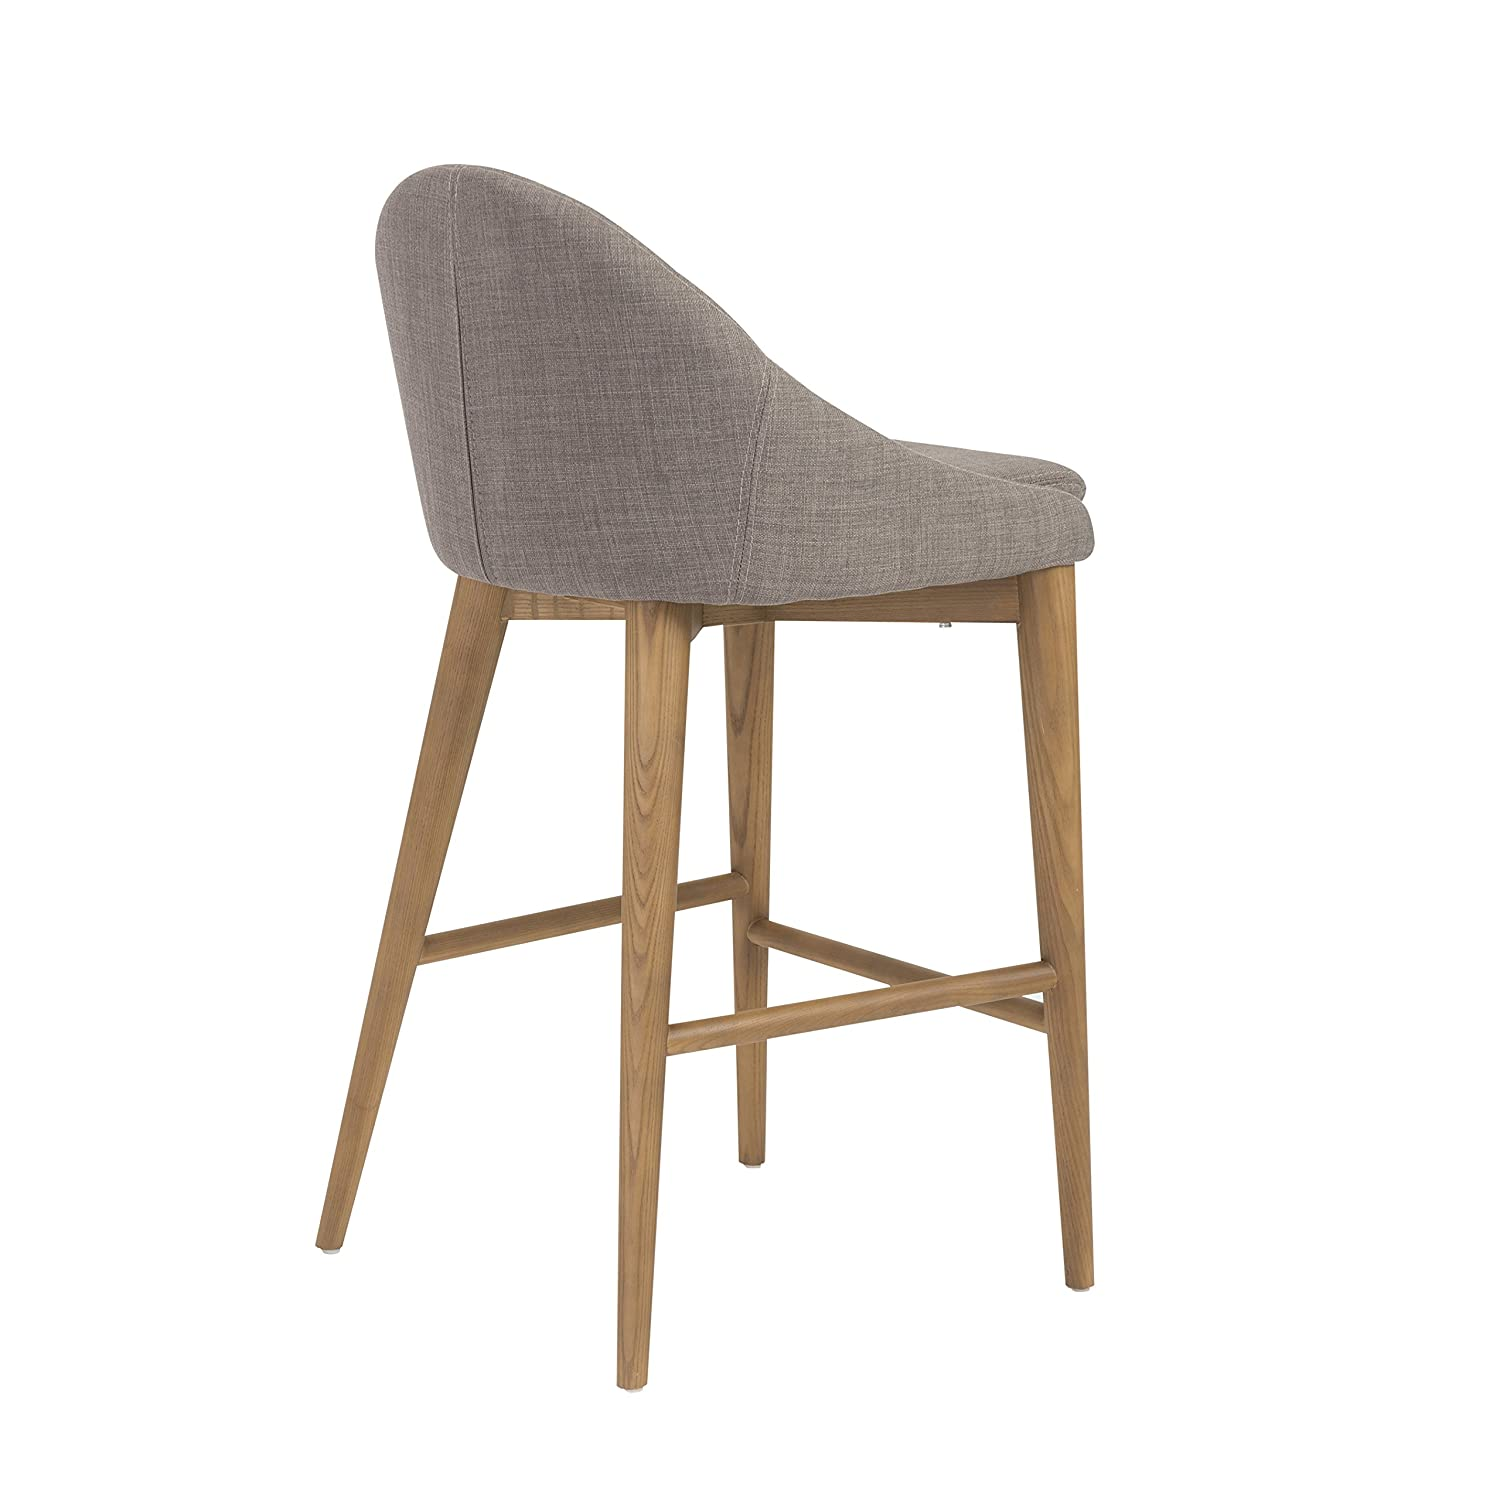 Euro Style Baruch Counter-Height Stool in Walnut Finished Legs, Dark Gray